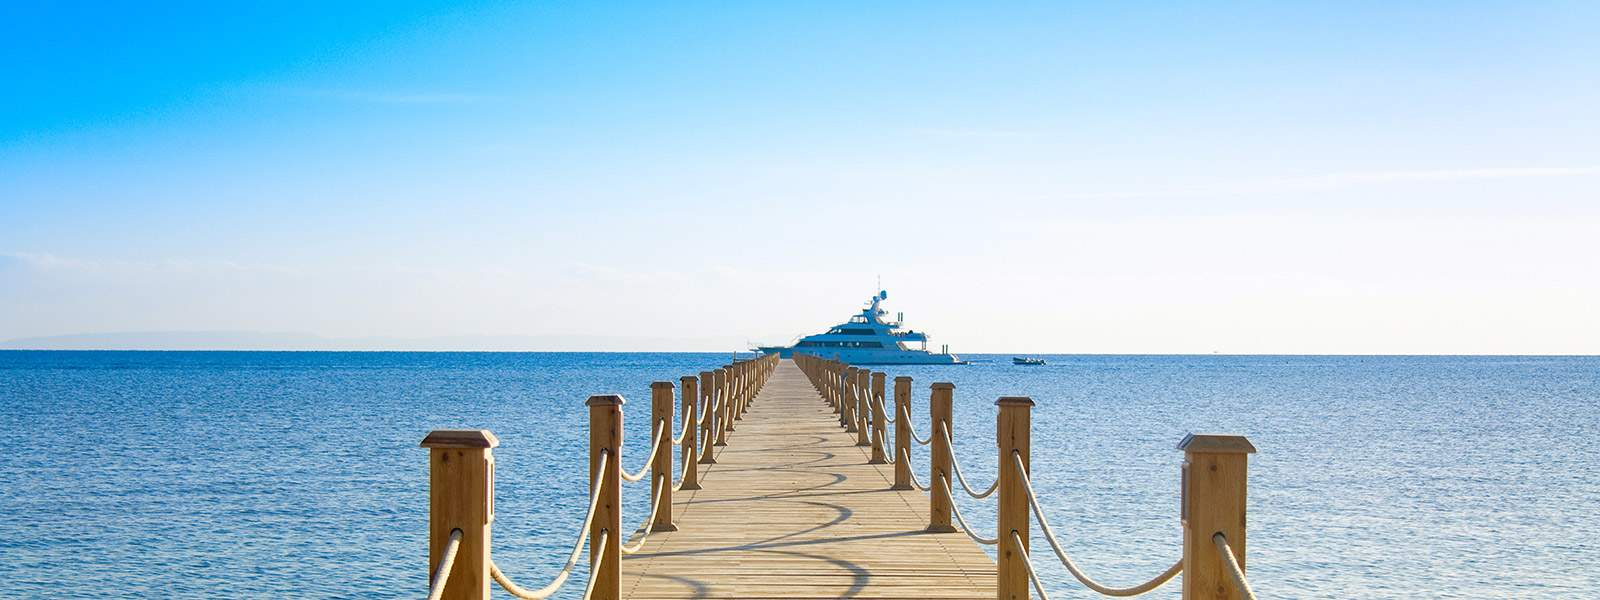 A wooden pontoon with a charter yacht ready to welcome charter guests